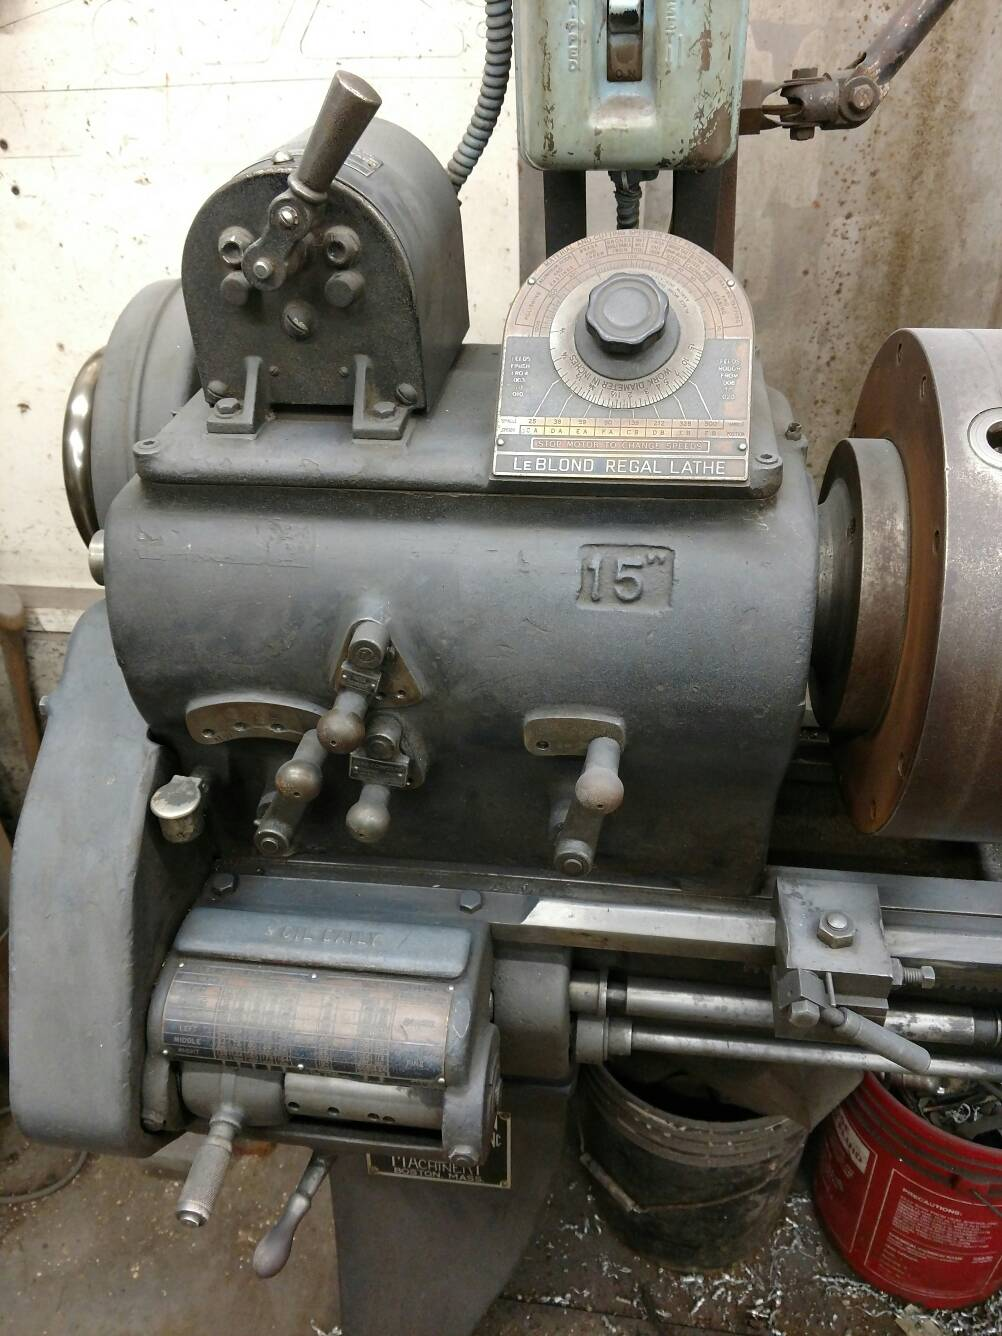 ad0341117feeb939d5bb6818e5c5d5f3 acquired my first lathe leblond 15\